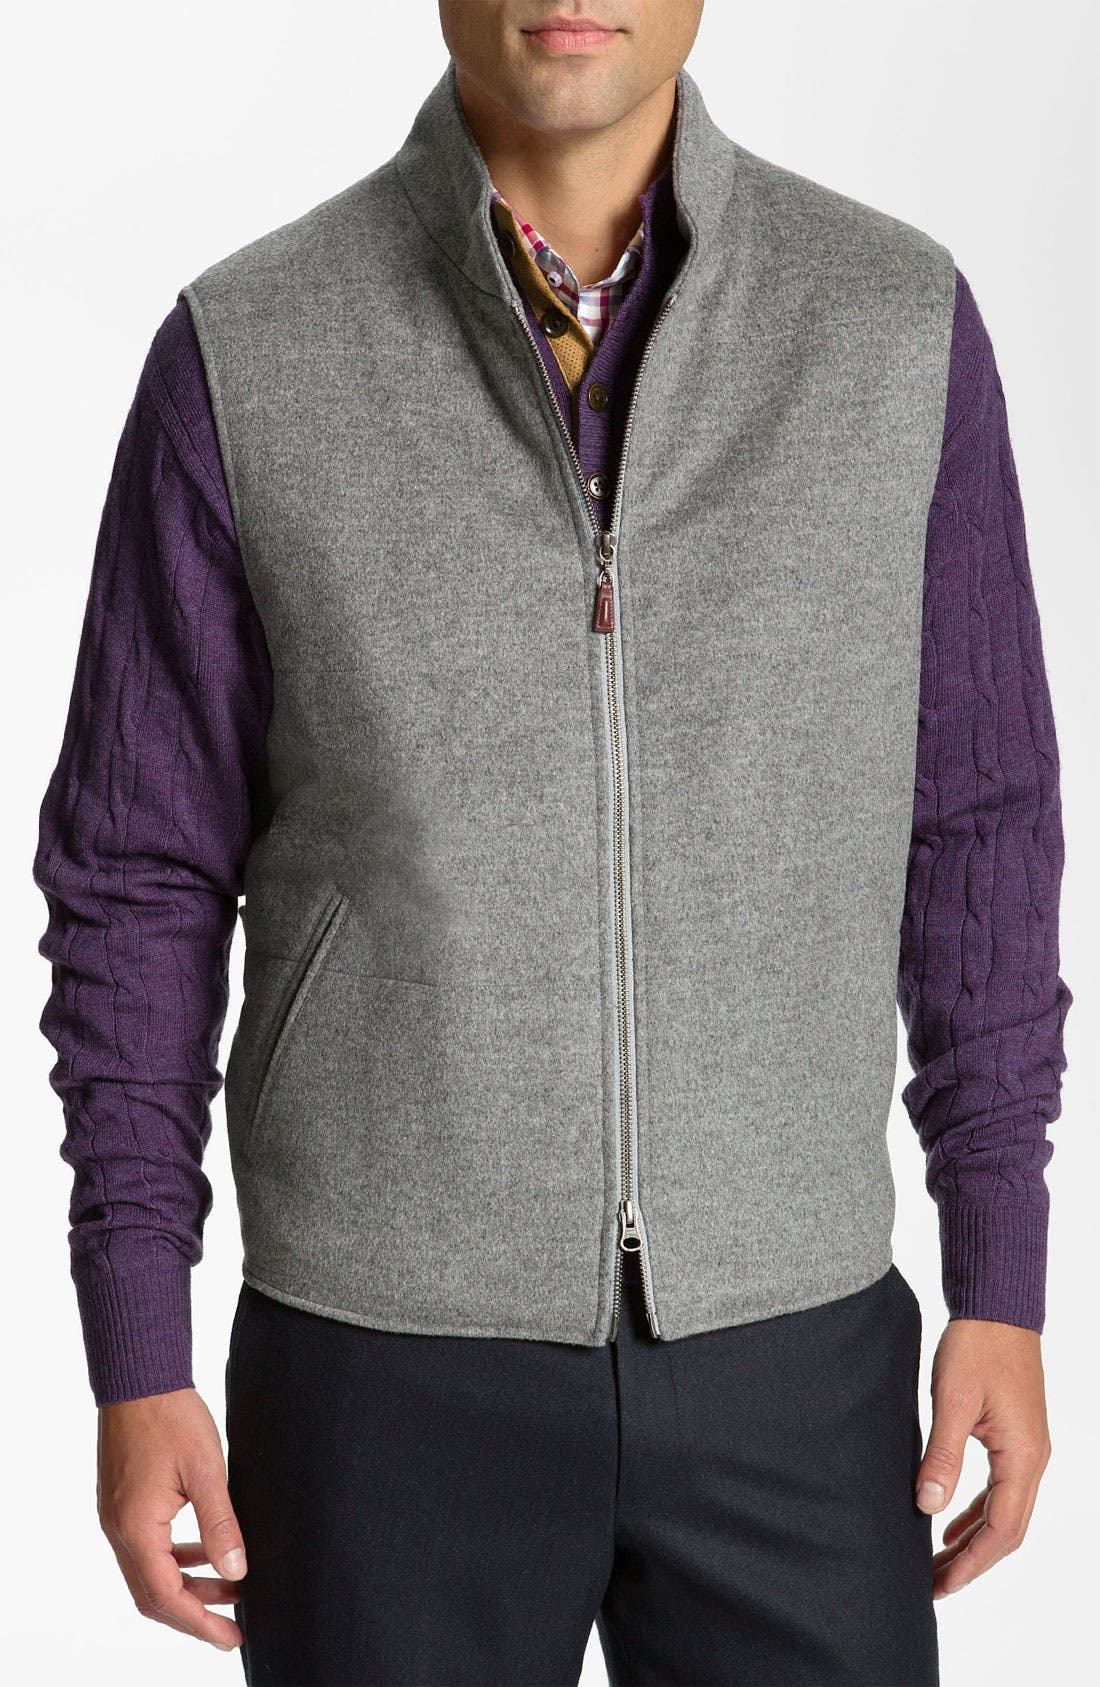 Main Image - Peter Millar Wool & Cashmere Vest